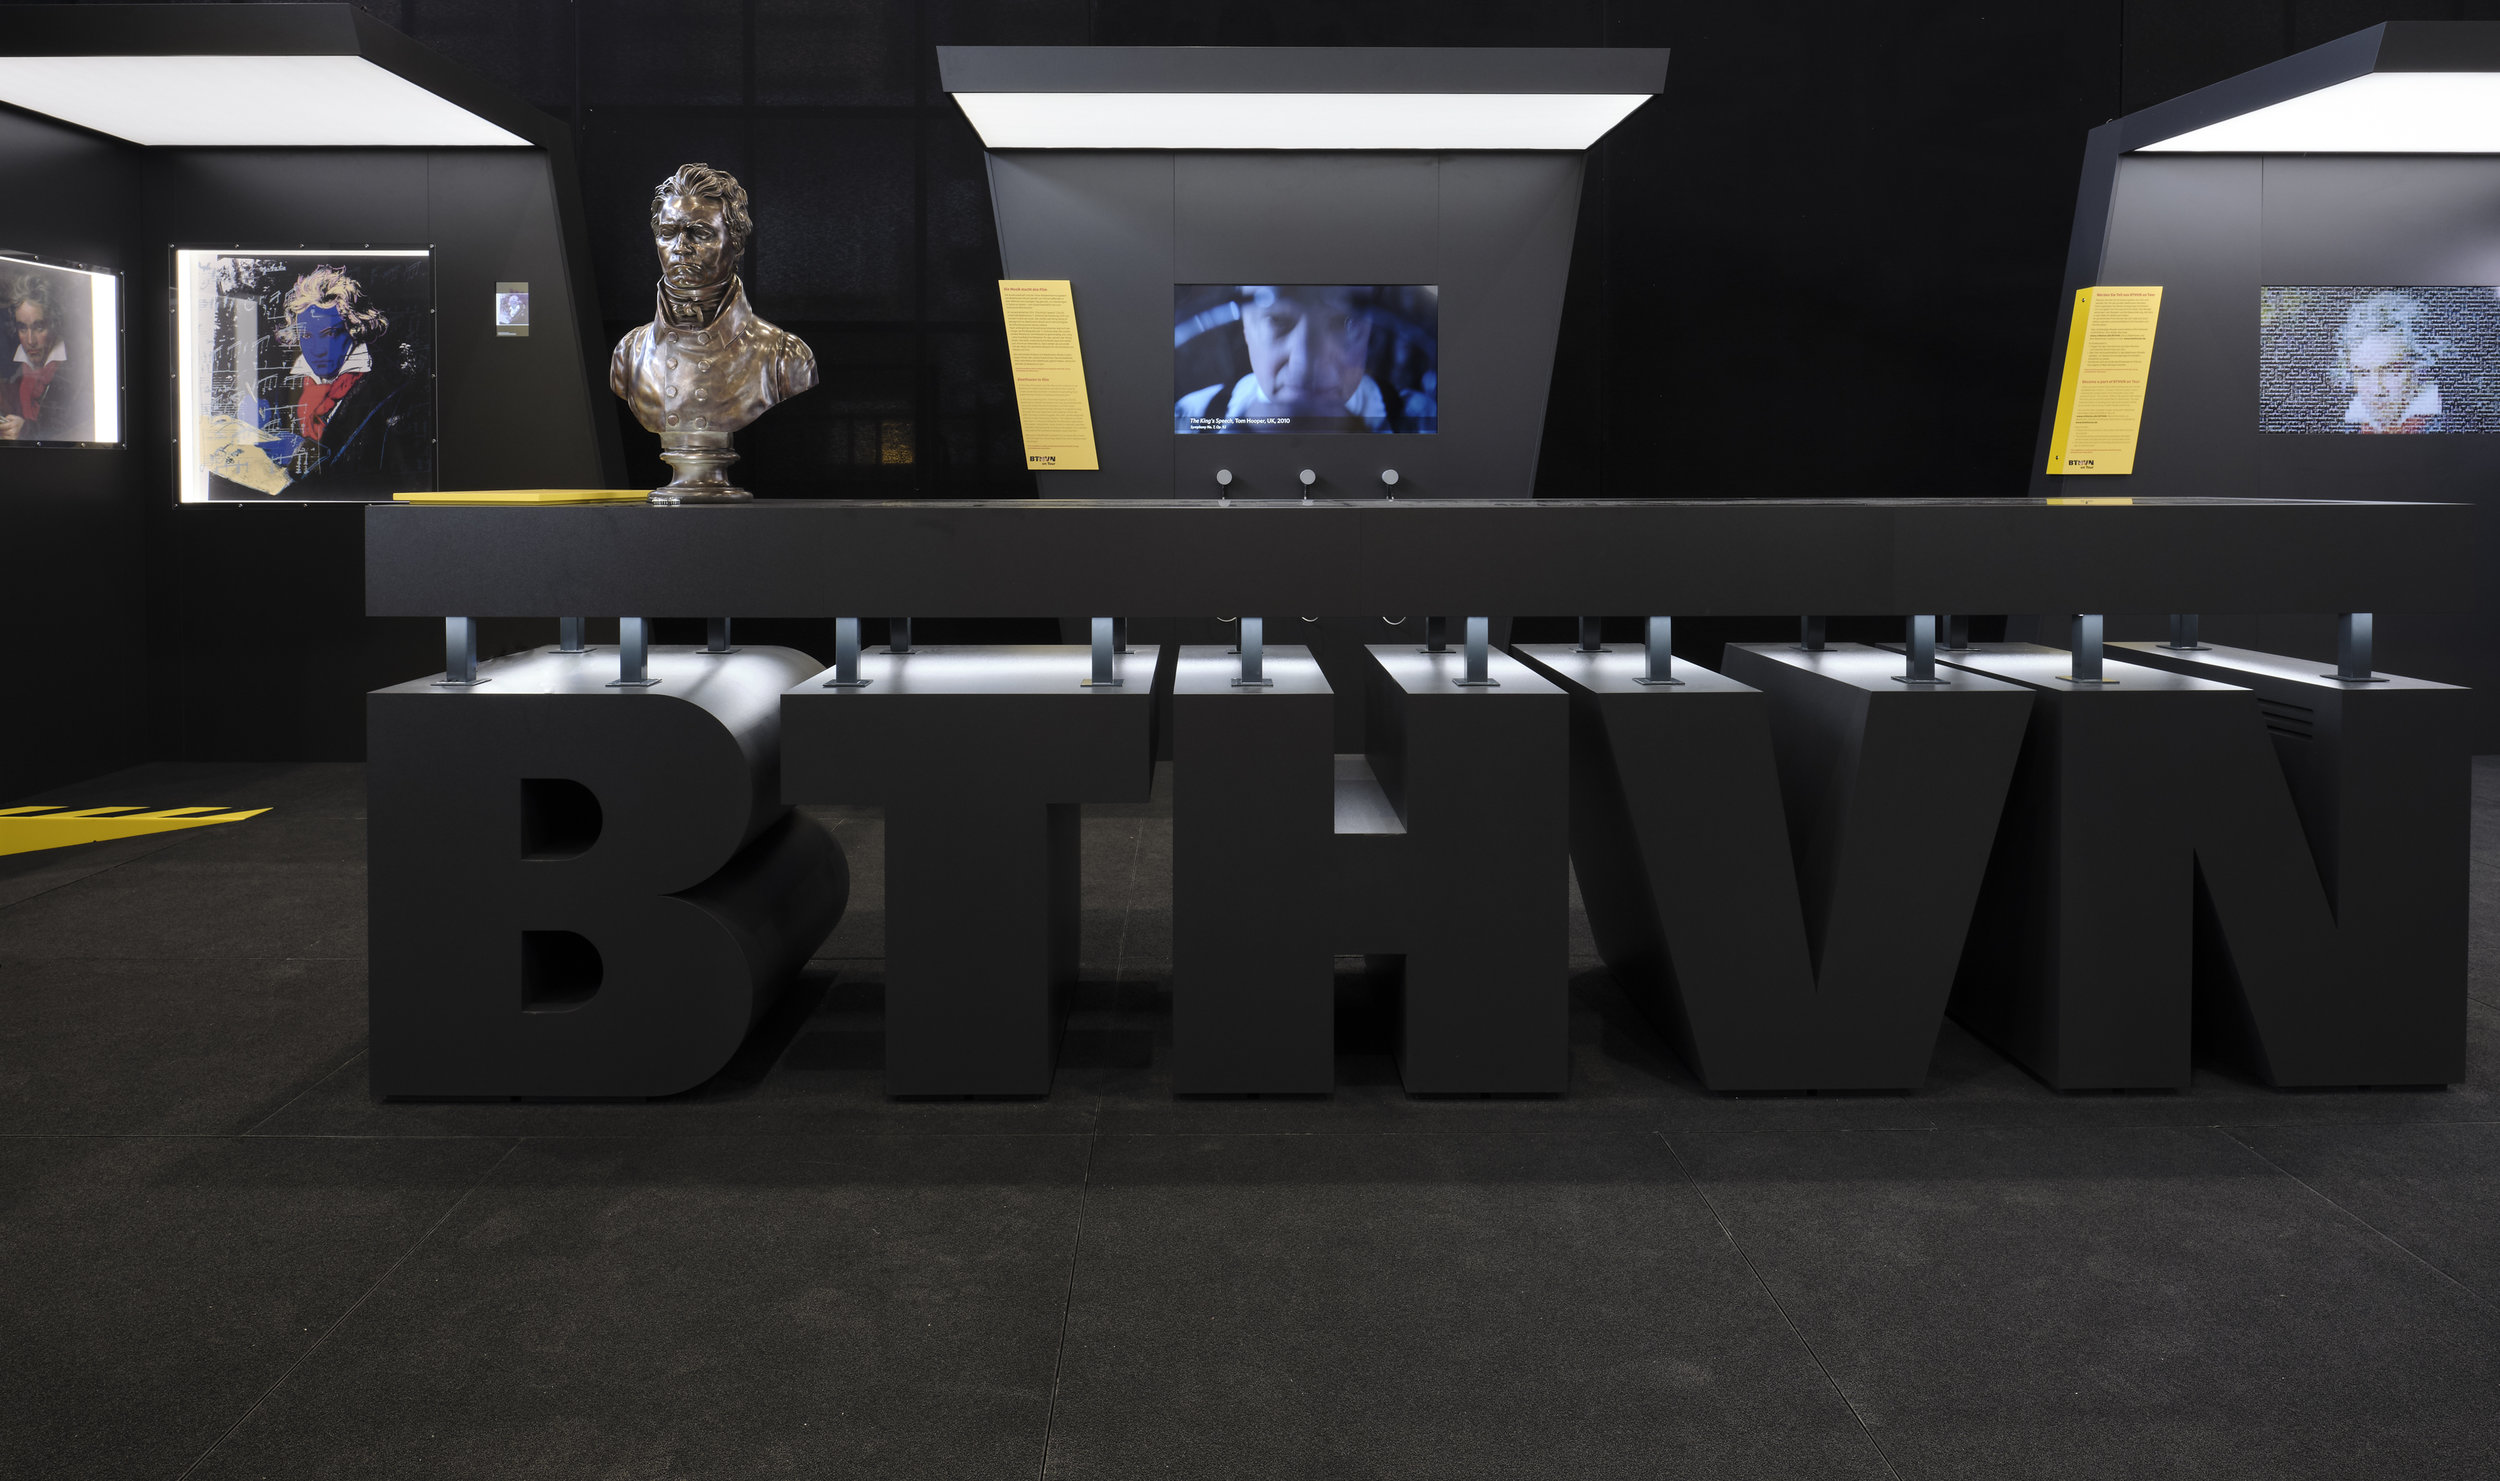 BTHVN on Tour - Sponsored by Beethoven-Haus Bonn and DHL GroupSteinway HallJune 6-1110am - 6pm (Closed Sunday)*Visible for Festival performances June 6 & June 10